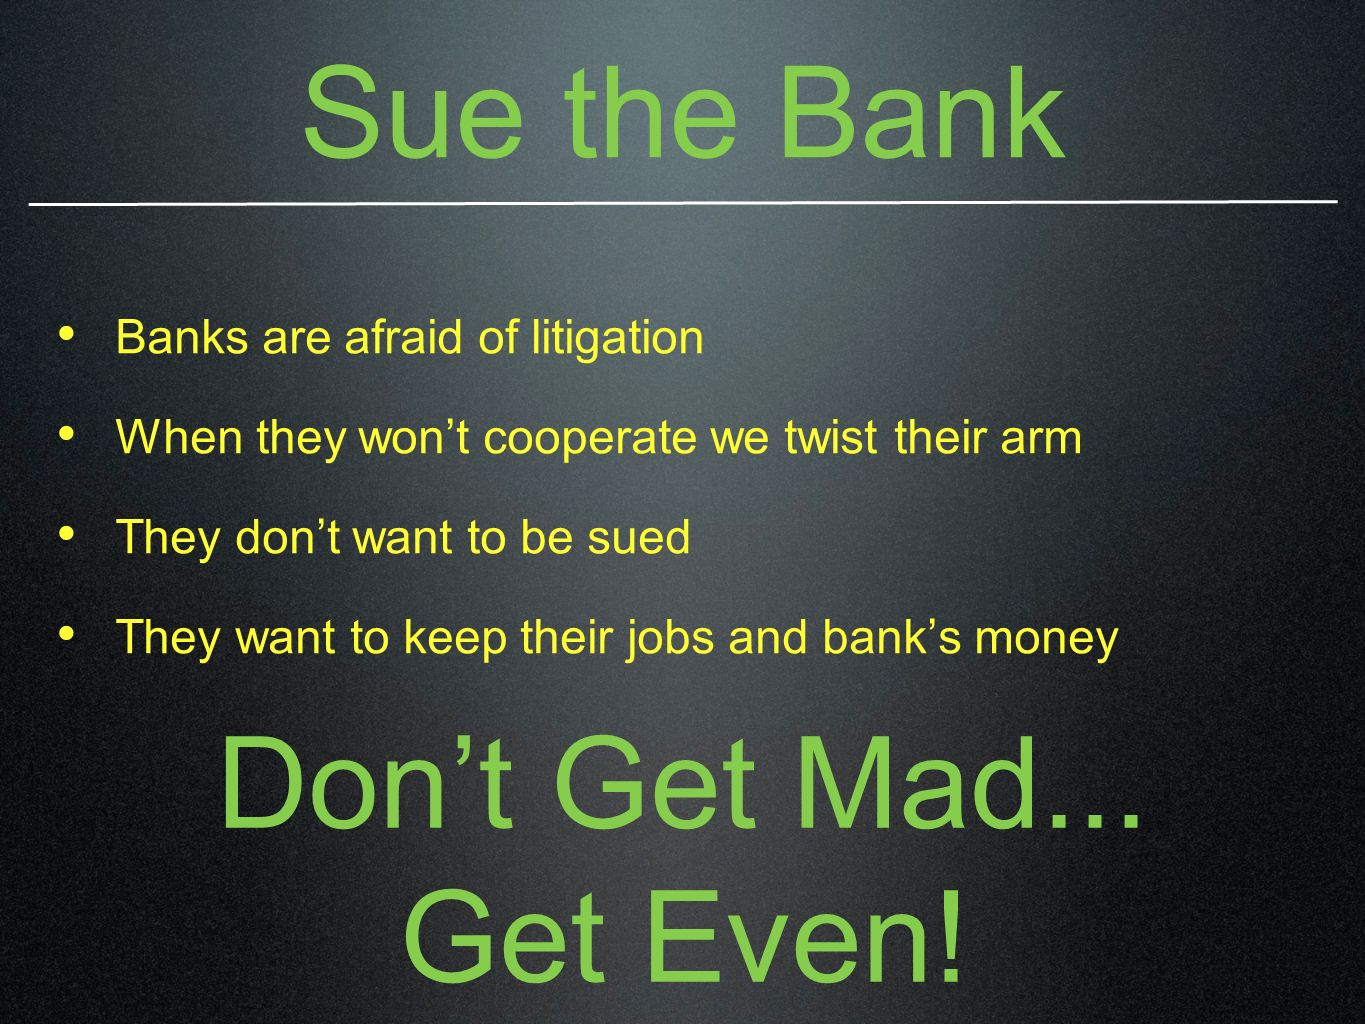 Sue the Bank Banks are afraid of litigation When they wont cooperate we twist their arm They dont want to be sued They want to keep their jobs and banks money Dont Get Mad...